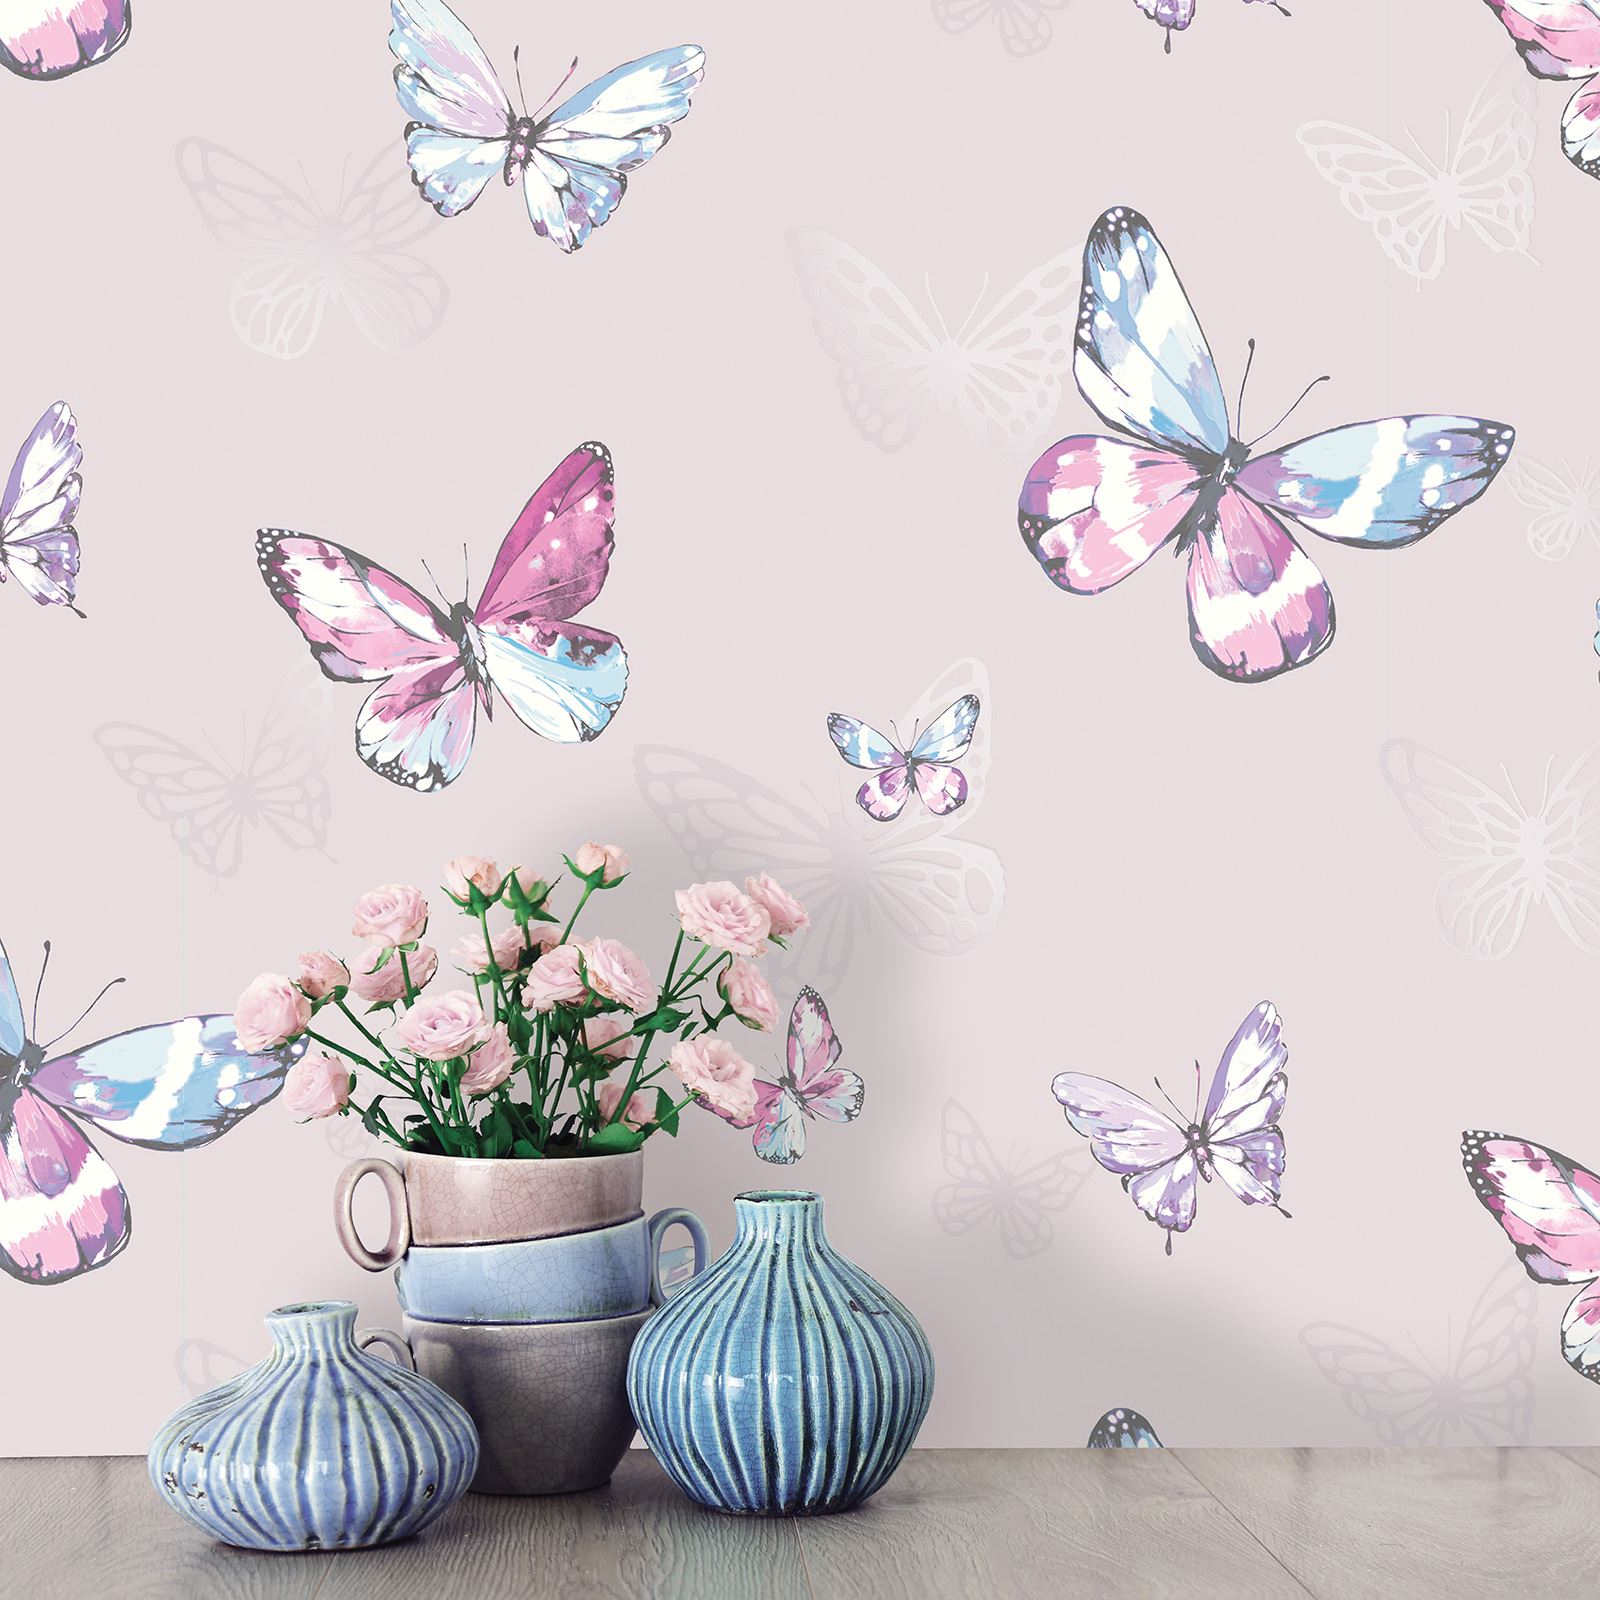 Sleigh Bedroom Sets King Bedroom Jpg Simple Bedroom Colour Design Bedroom Accessories Uk: GIRLS BEDROOM BUTTERFLY WALLPAPER IN PINK, WHITE, TEAL